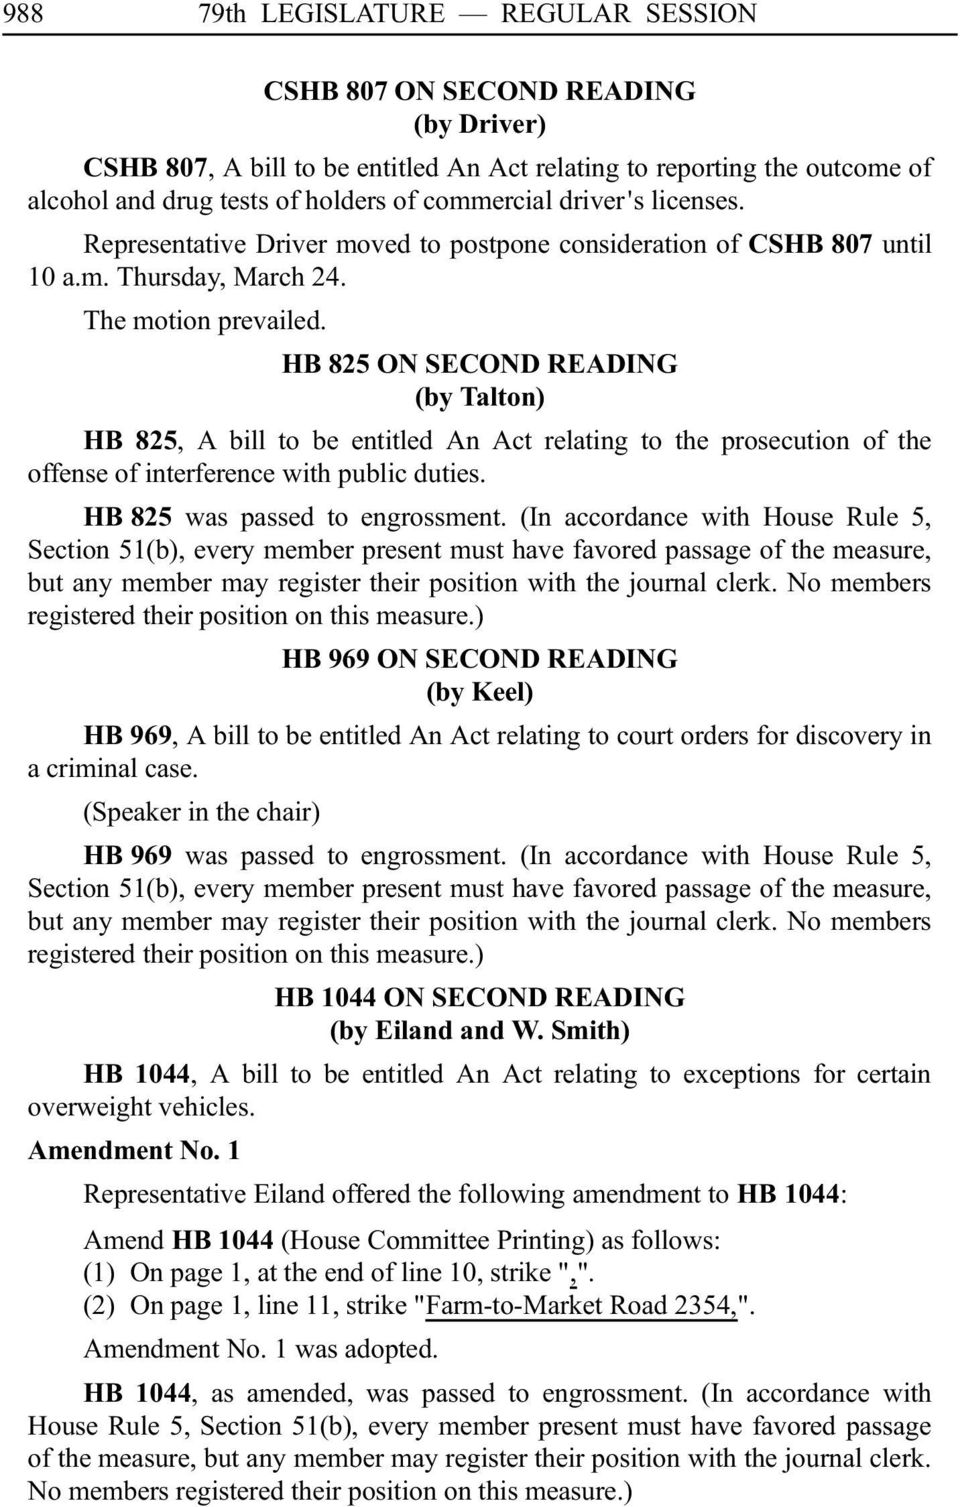 HB 825 ON SECOND READING (by Talton) HB 825, A bill to be entitled An Act relating to the prosecution of the offense of interference with public duties. HBi825 was passed to engrossment.